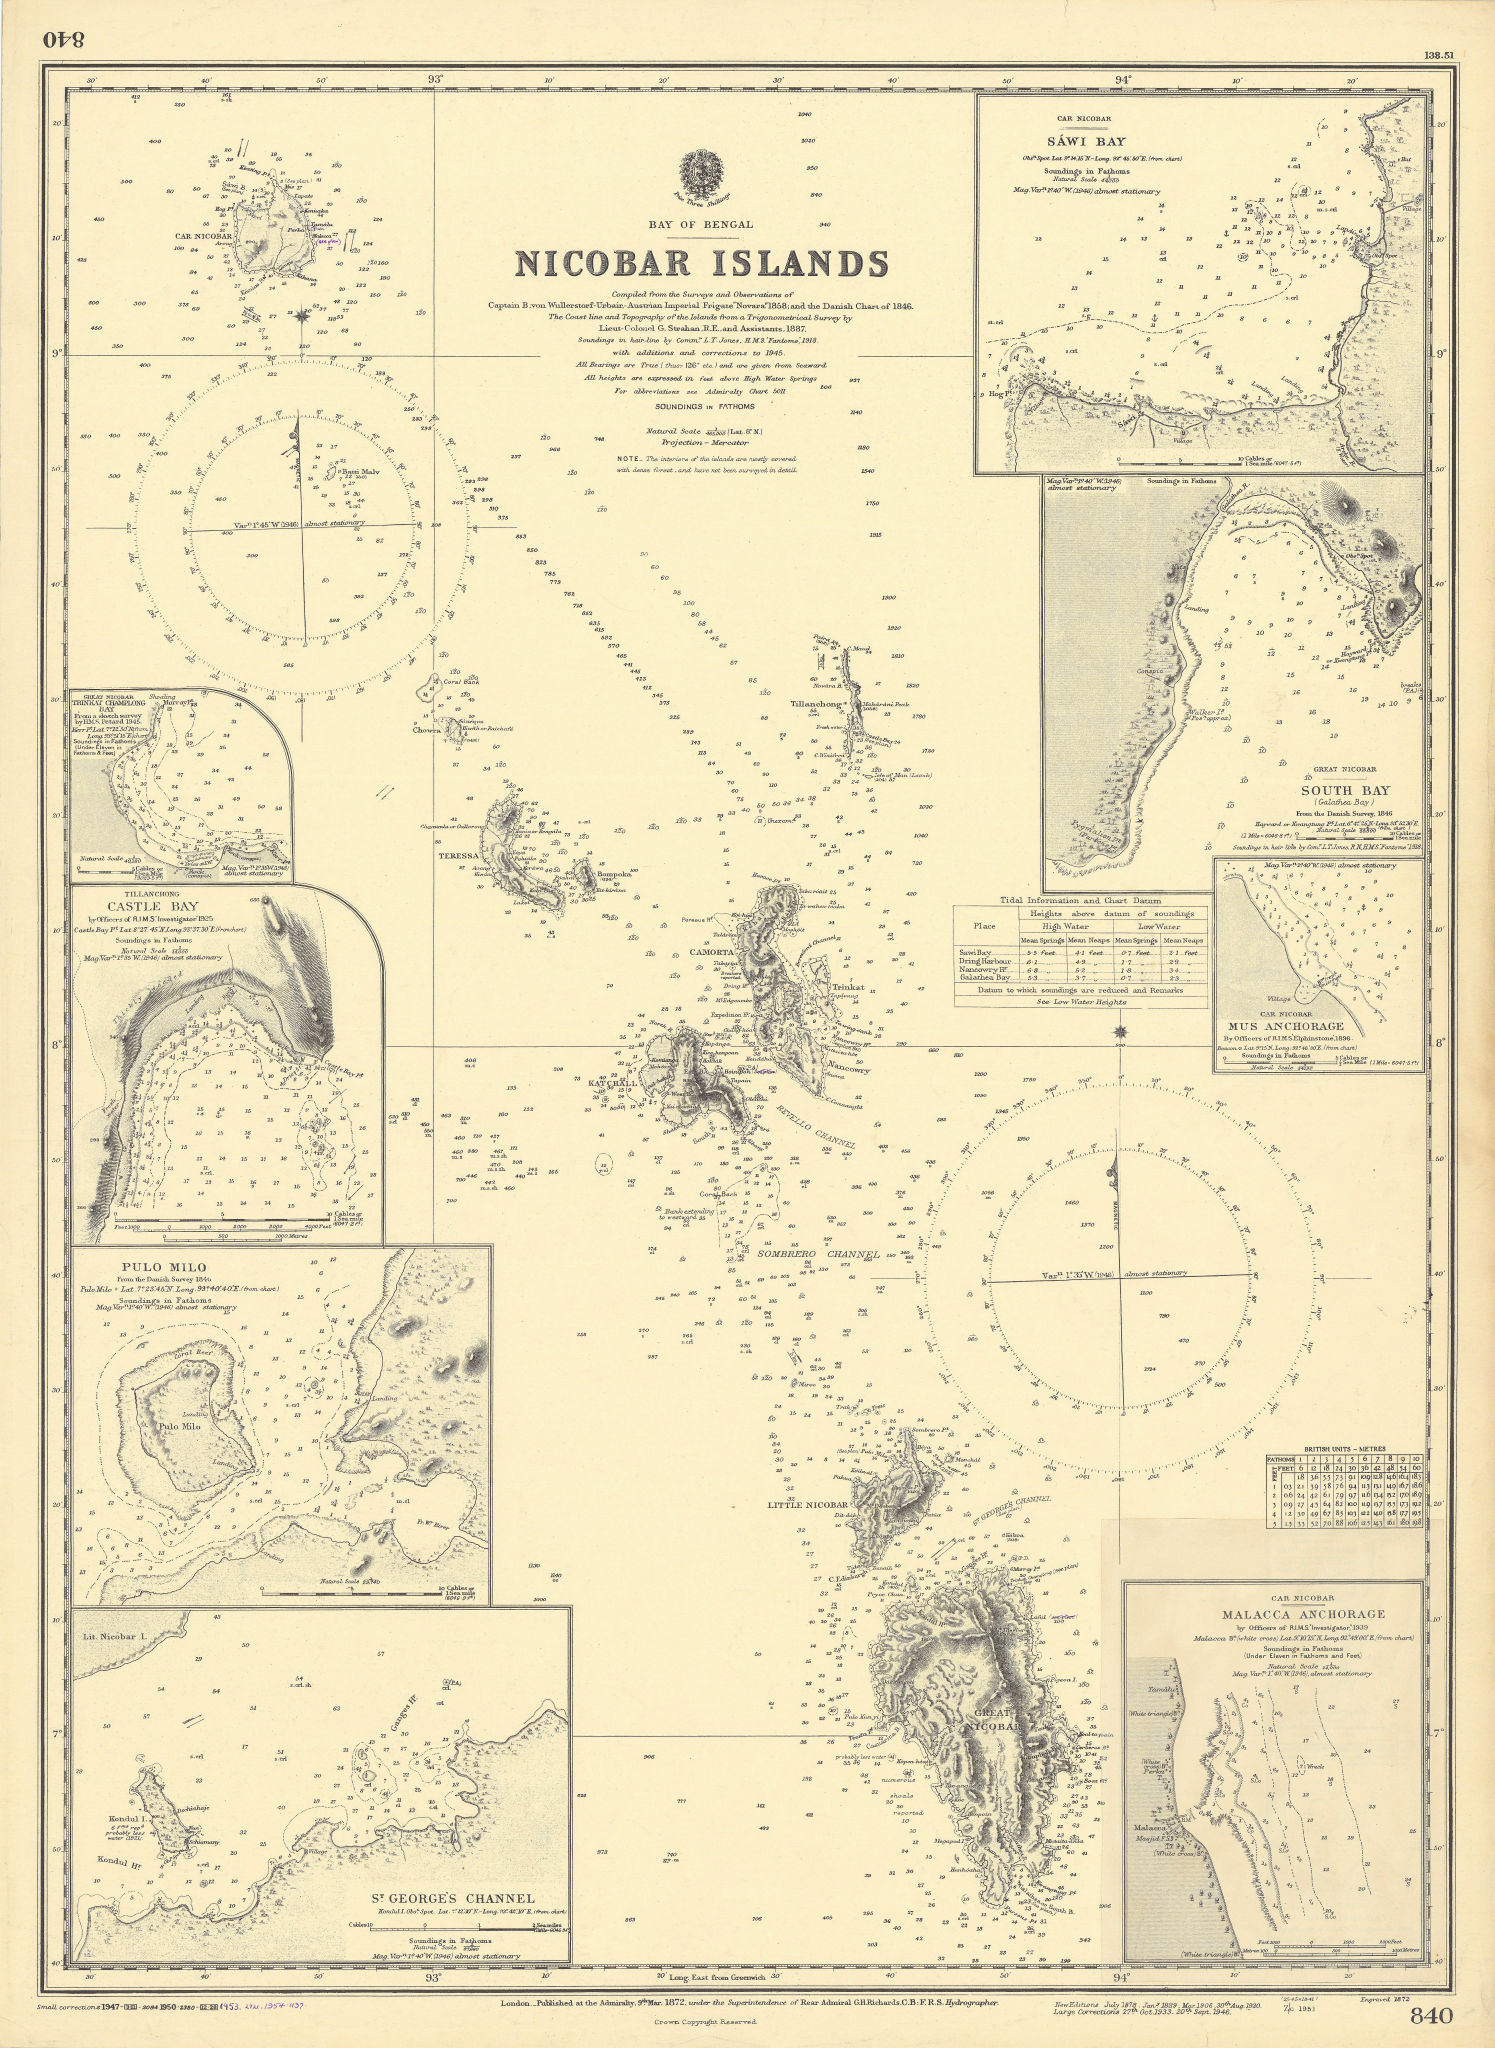 Nicobar Islands harbours India Bay of Bengal ADMIRALTY sea chart 1872 (1954) map